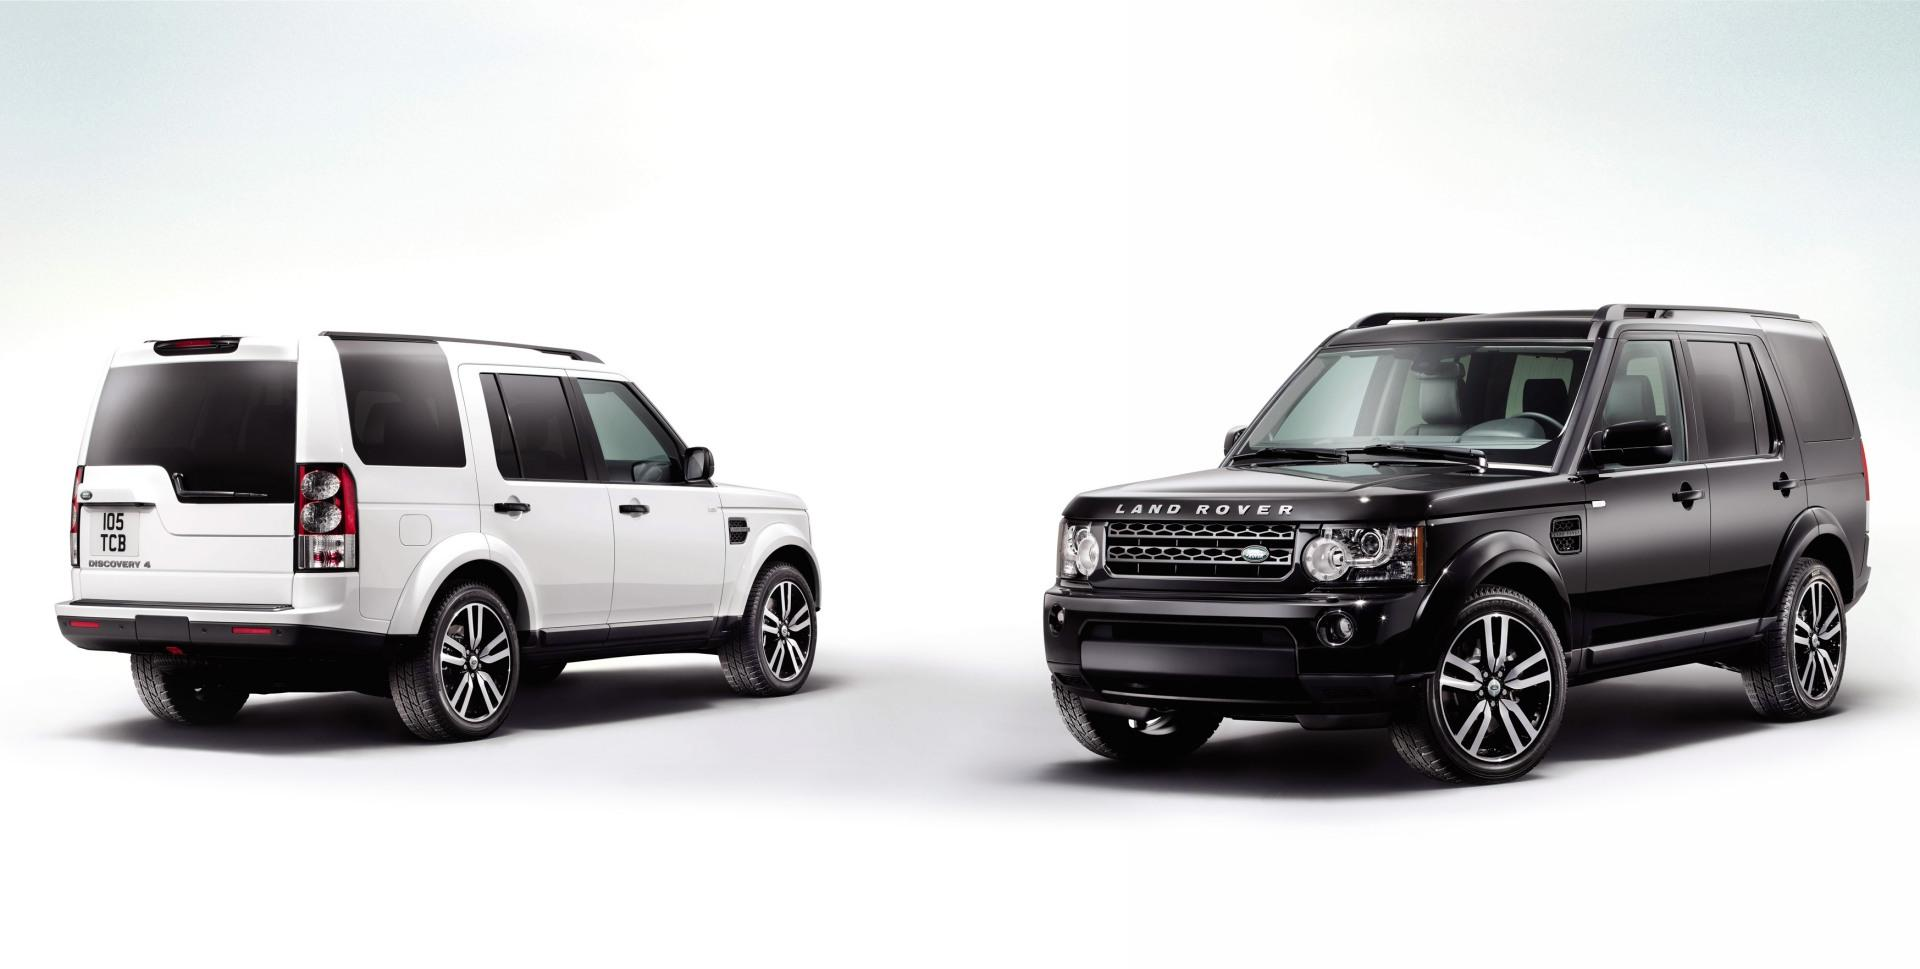 2010 Land Rover Discovery 4 Landmark Limited Editions News